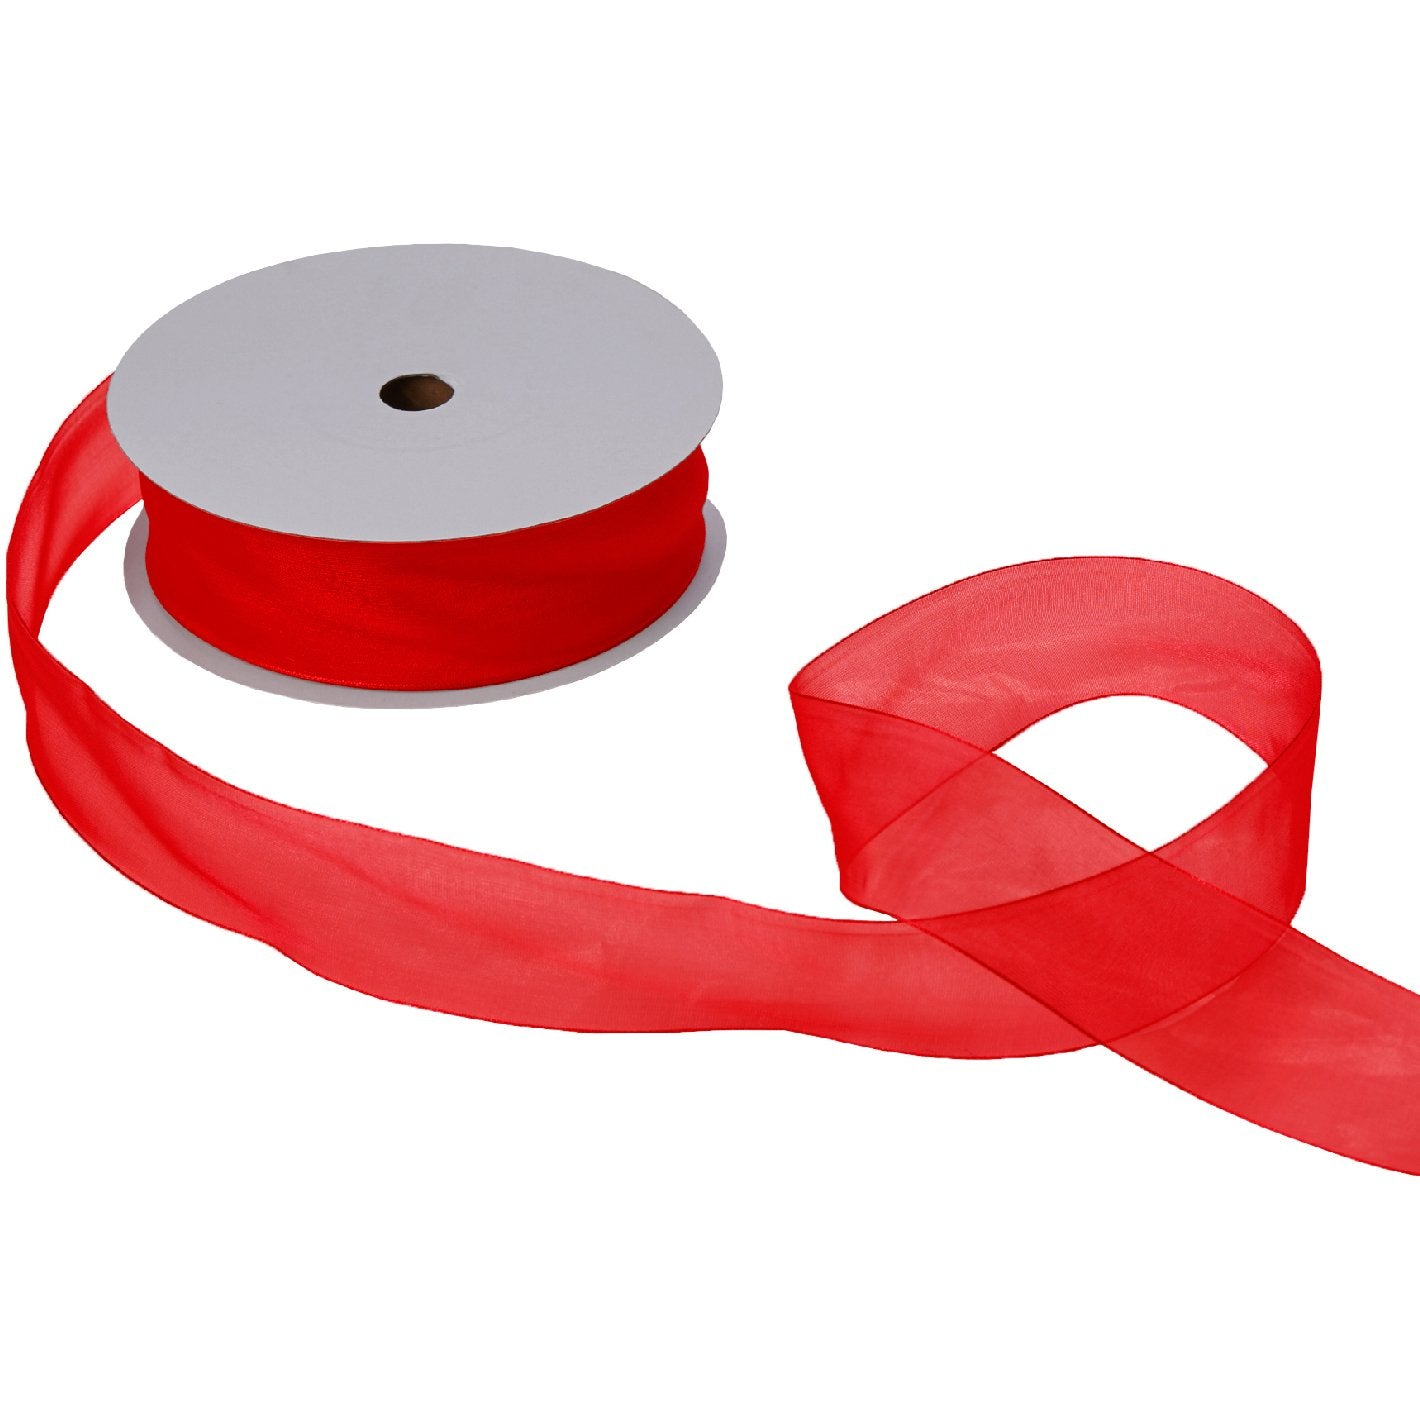 "Jillson & Roberts Organdy Sheer Ribbon, 1 1/2"" Wide x 100 Yards, Red"